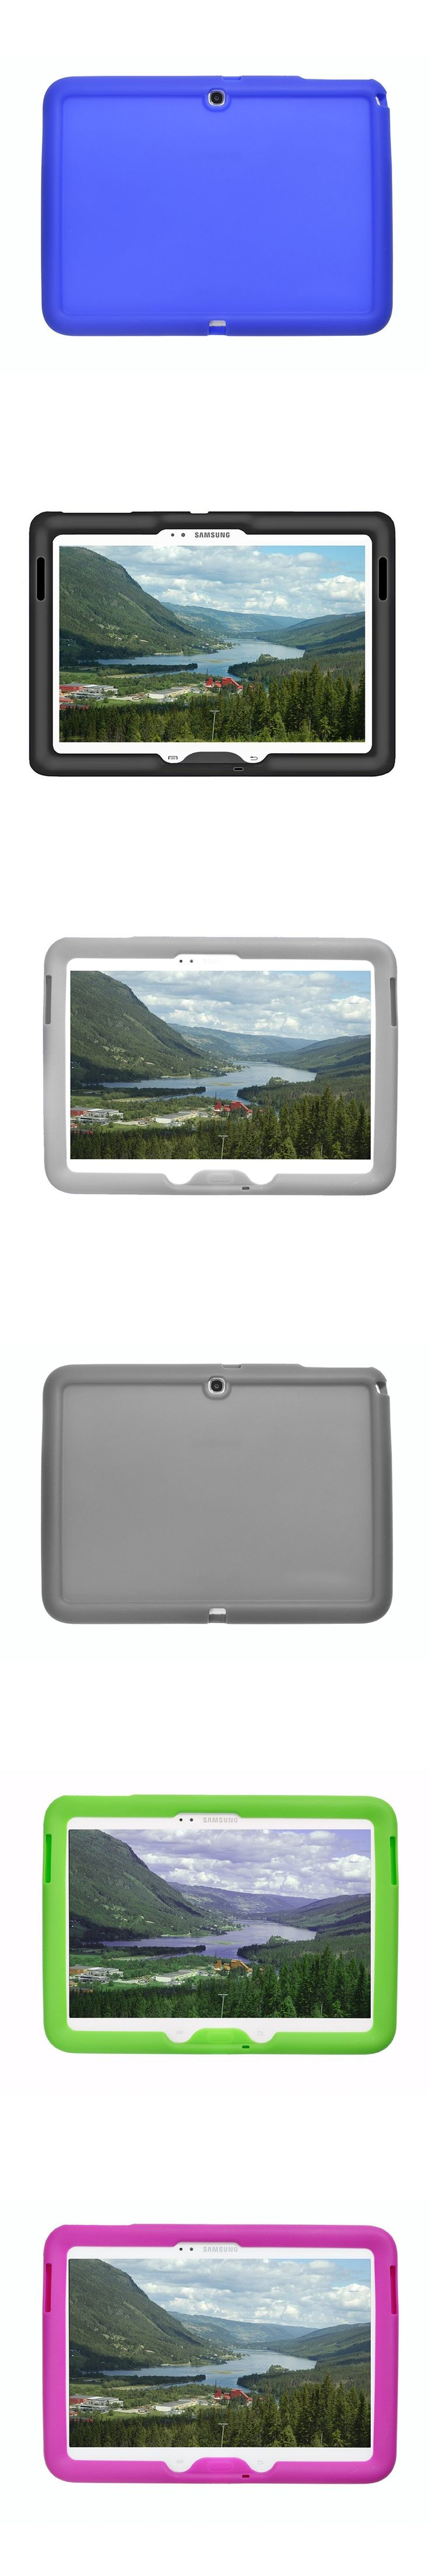 MingShore Rugged Tablet Silicone Cover Cas For Samsung Galaxy Tab 3 P5200 P5210 10.1 Cover For Galaxy Tab 3 10.1 P5220 Flat Case